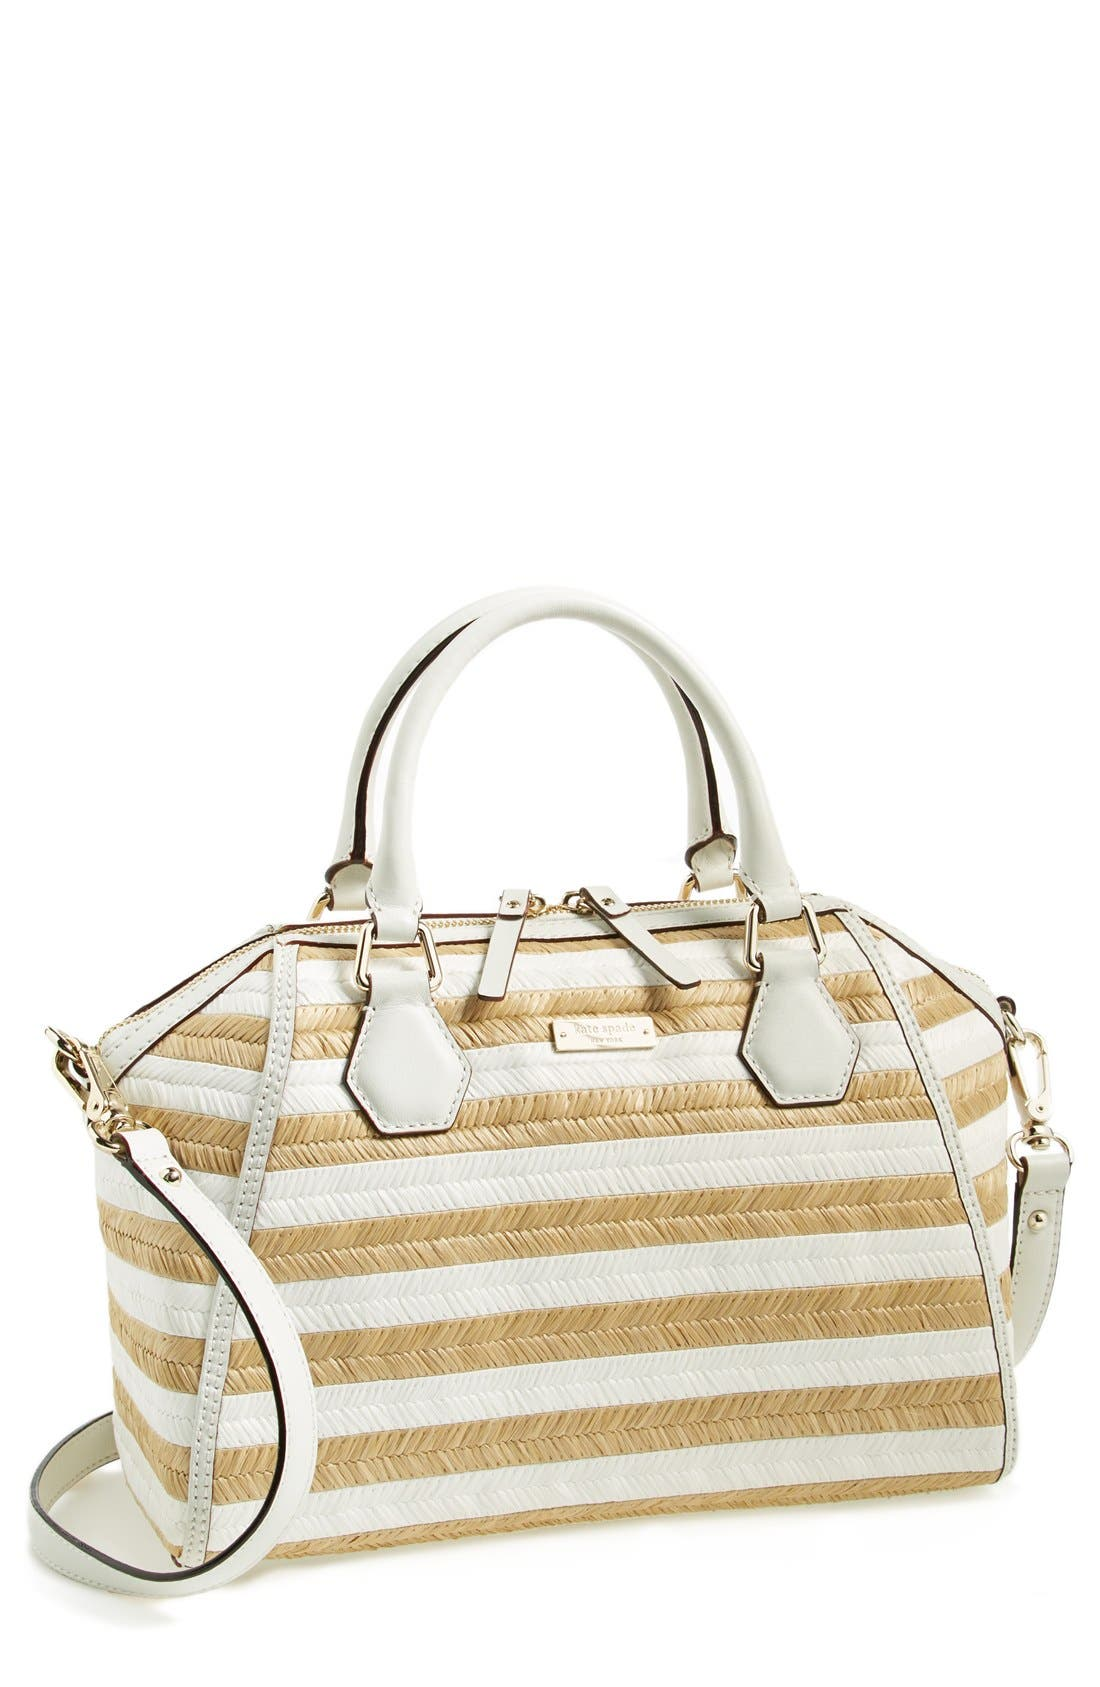 Alternate Image 1 Selected - kate spade new york 'pippa' straw satchel